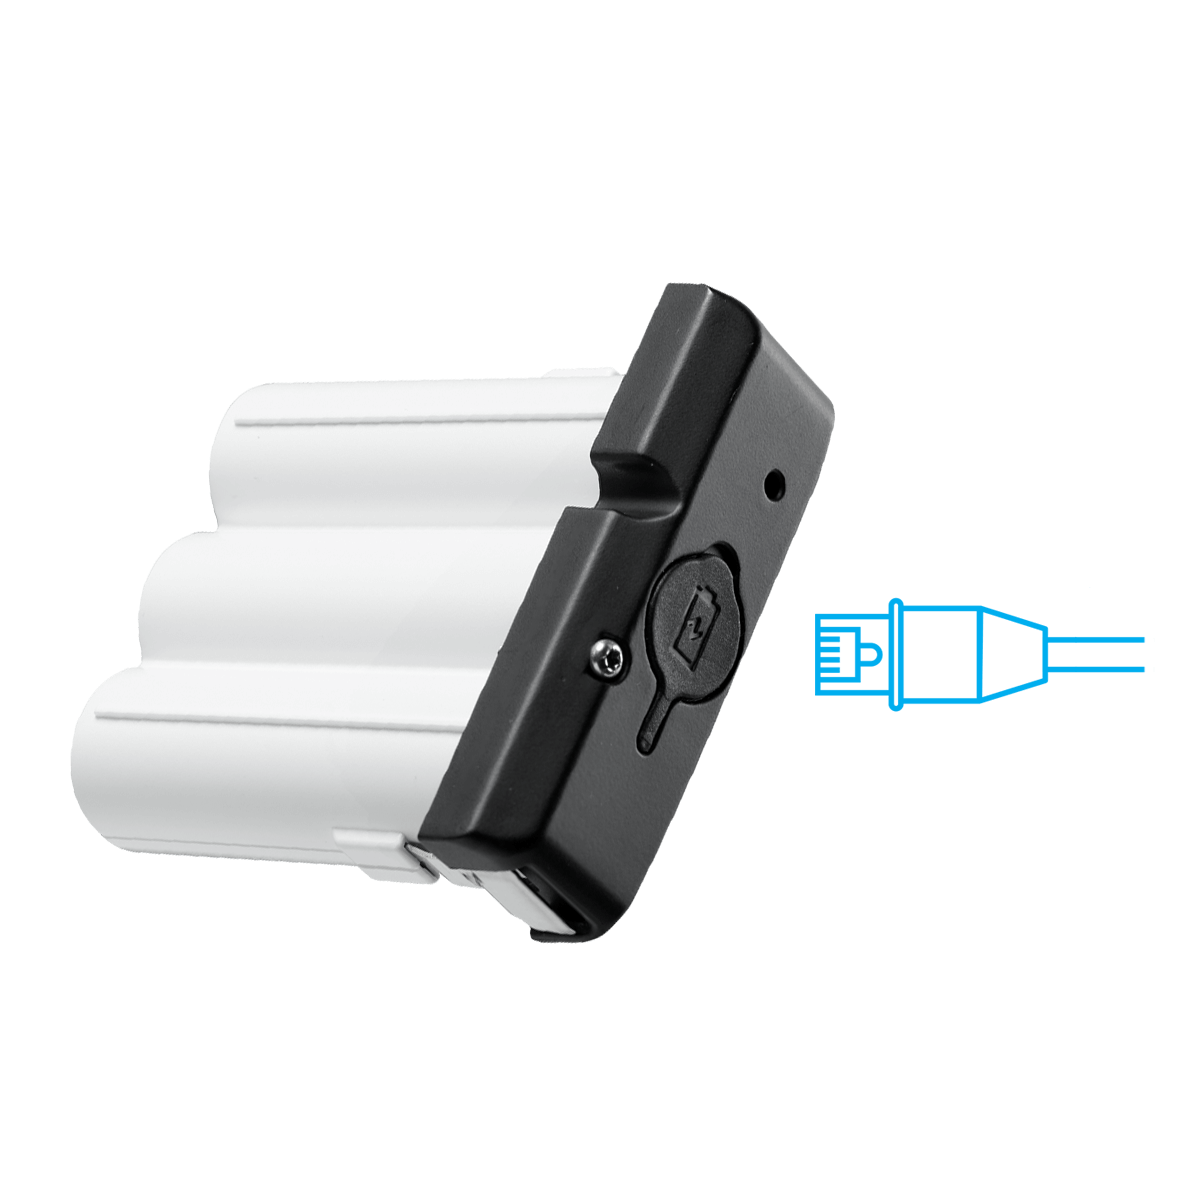 battery power pack with quick release